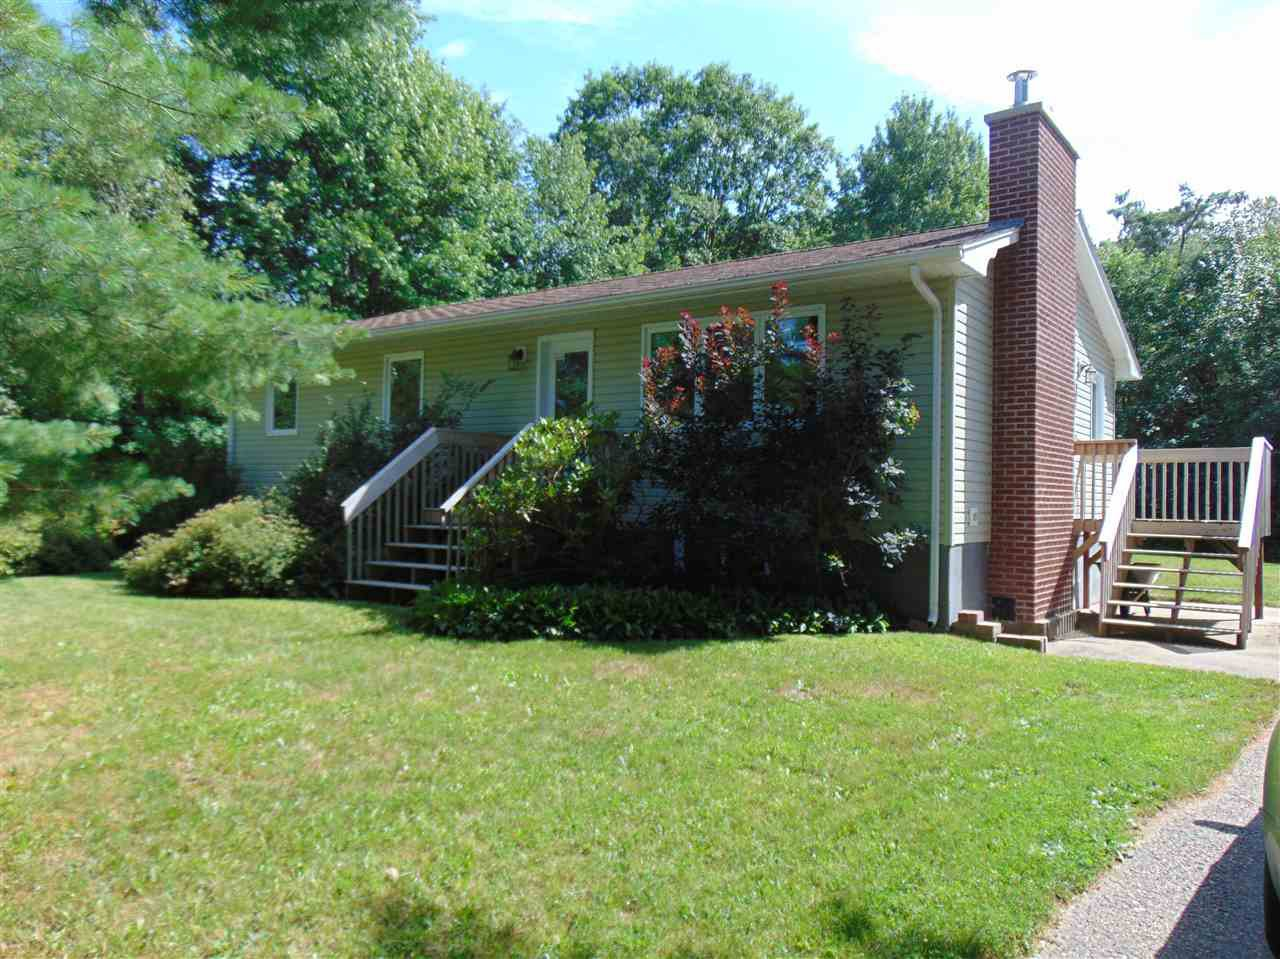 Main Photo: 871 Randolph Road in Cambridge: 404-Kings County Residential for sale (Annapolis Valley)  : MLS®# 202014354